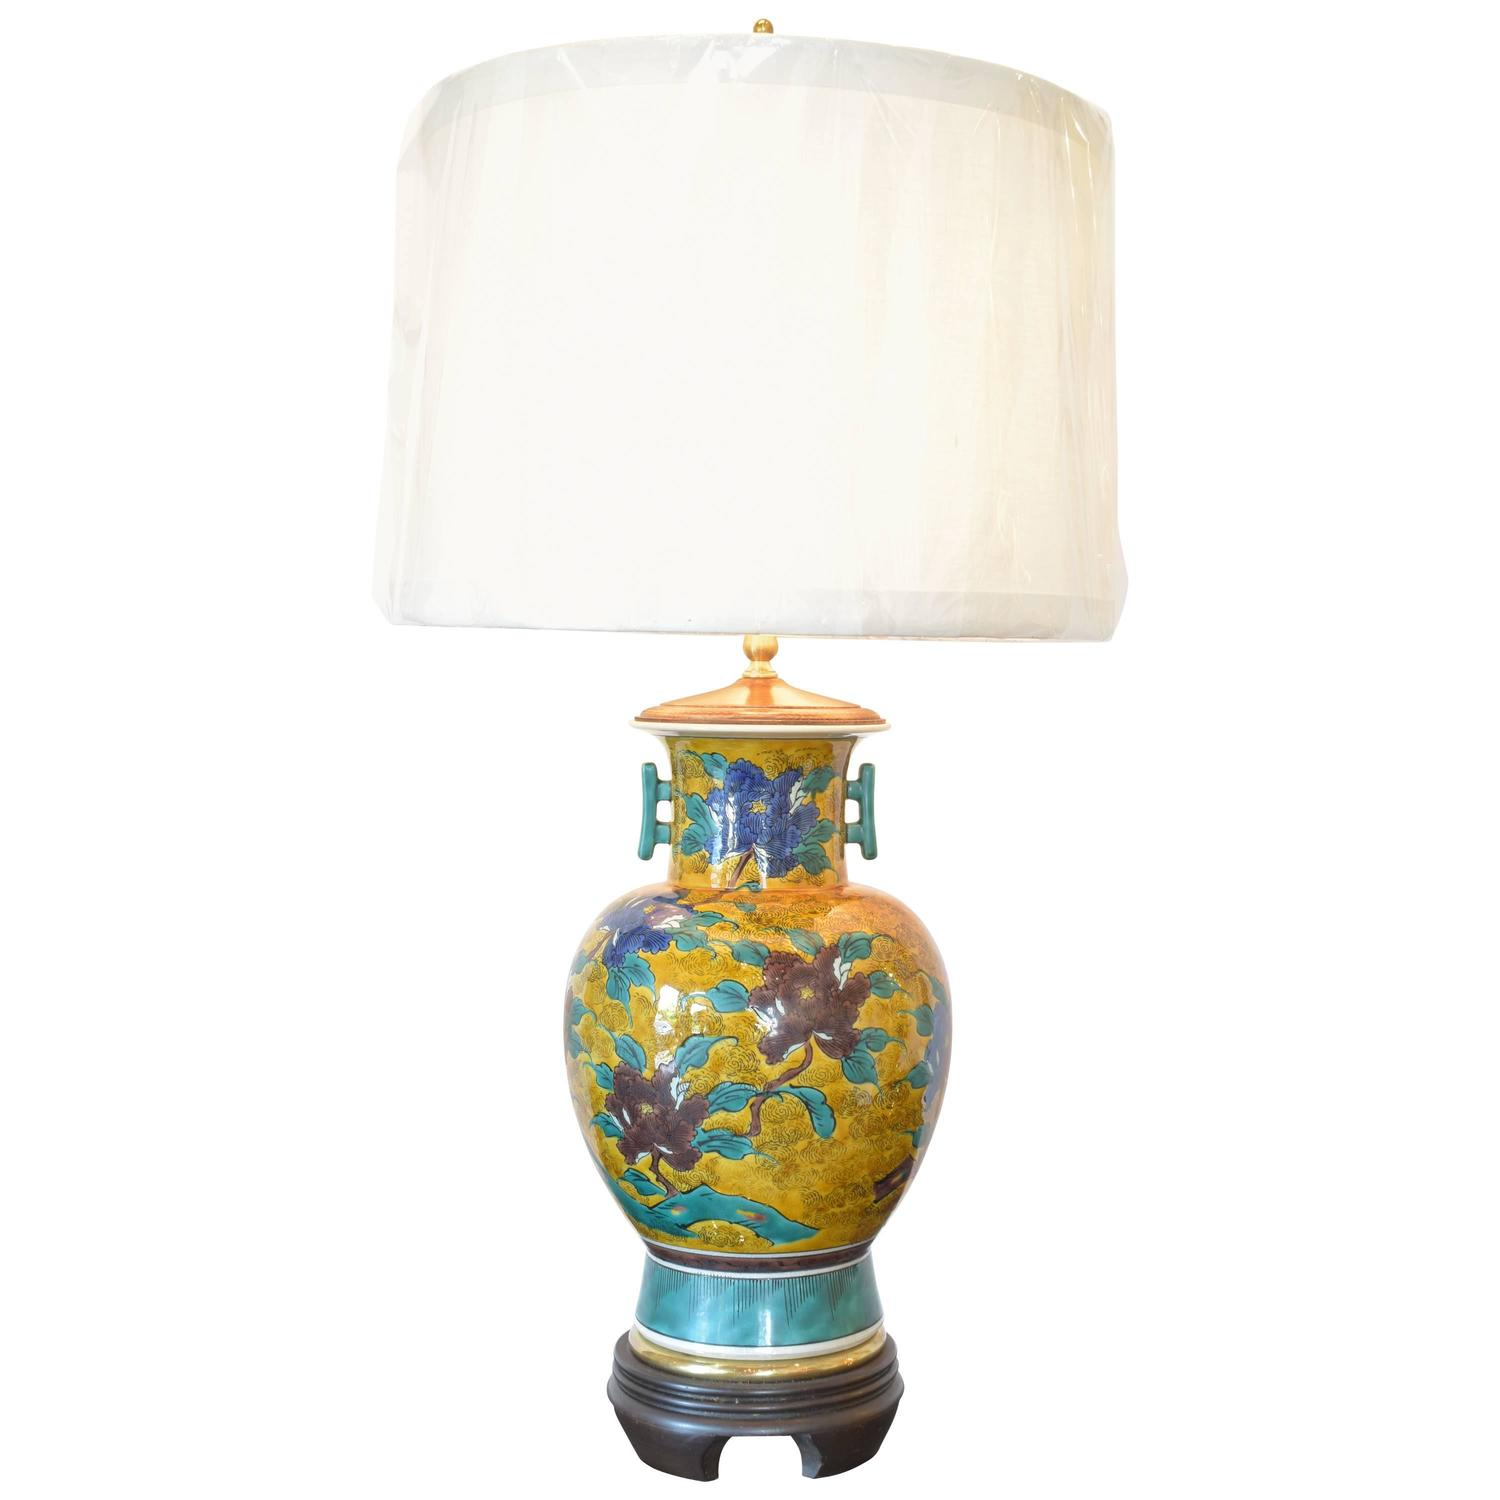 Vintage frederick cooper lamp at 1stdibs geotapseo Image collections